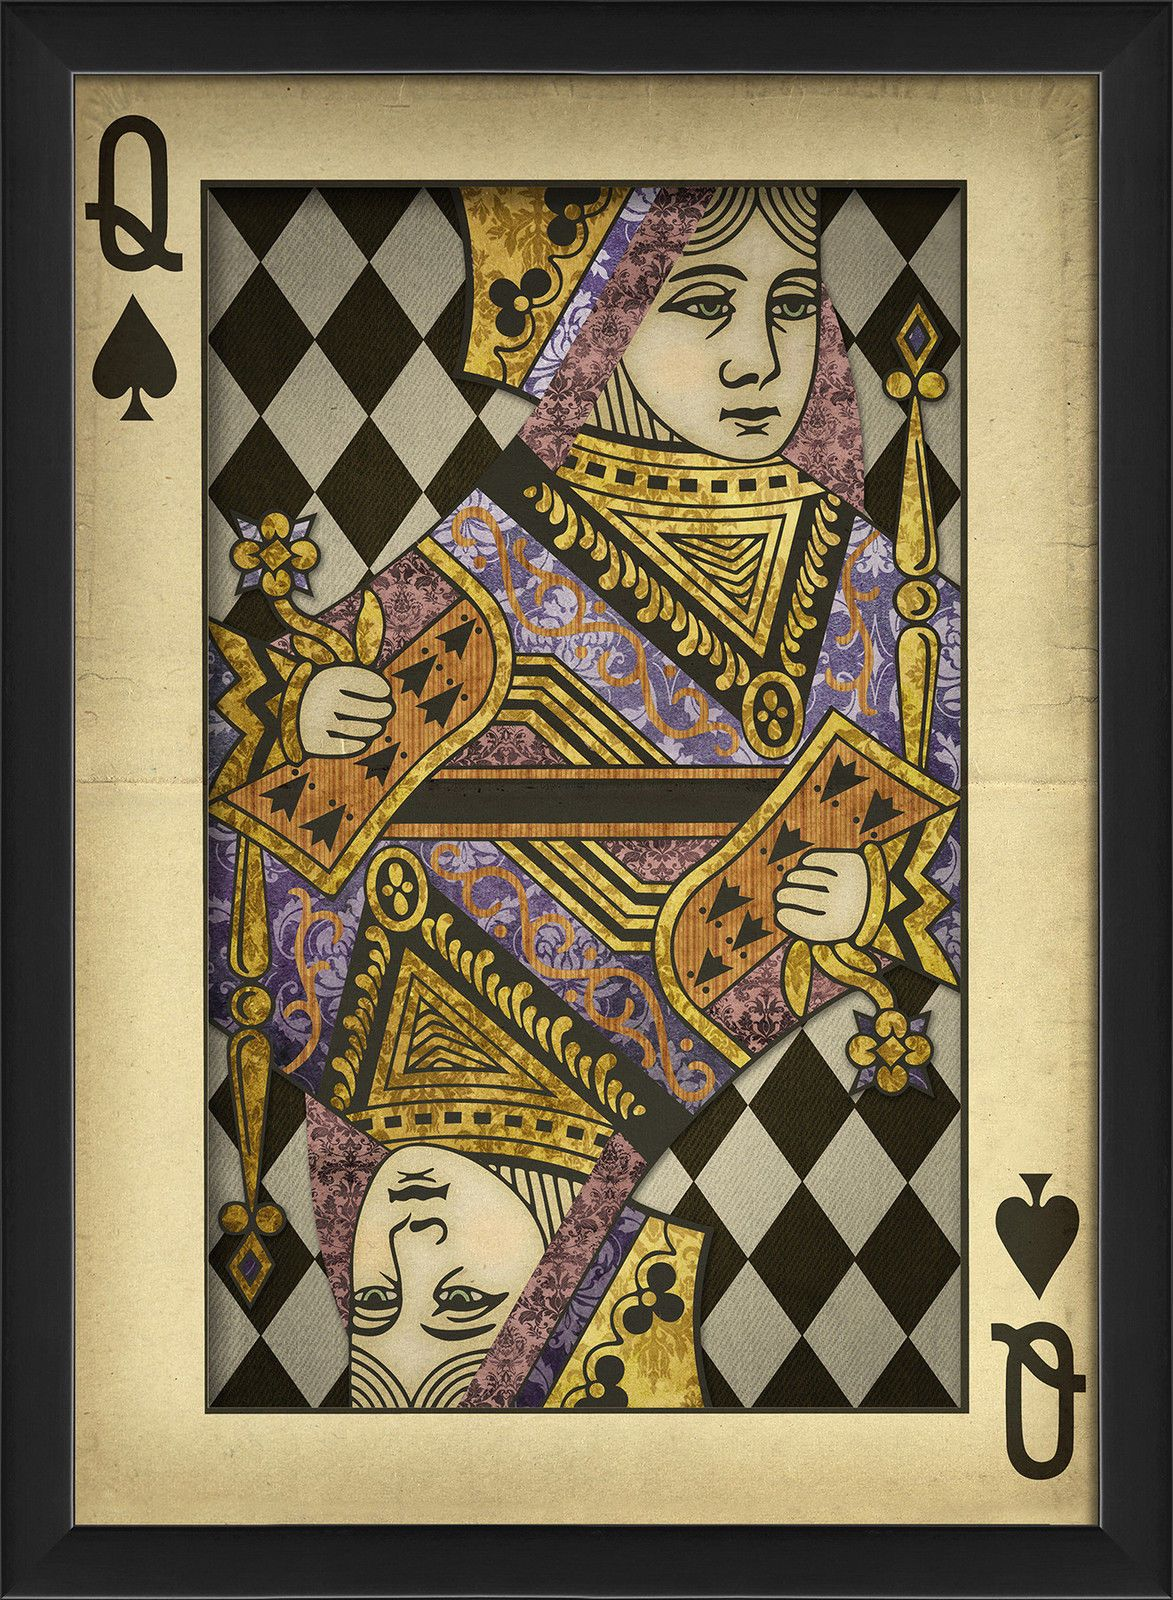 The Artwork Factory Queen of Spades Harlequin Playing Card Framed Graphic Art | eBay